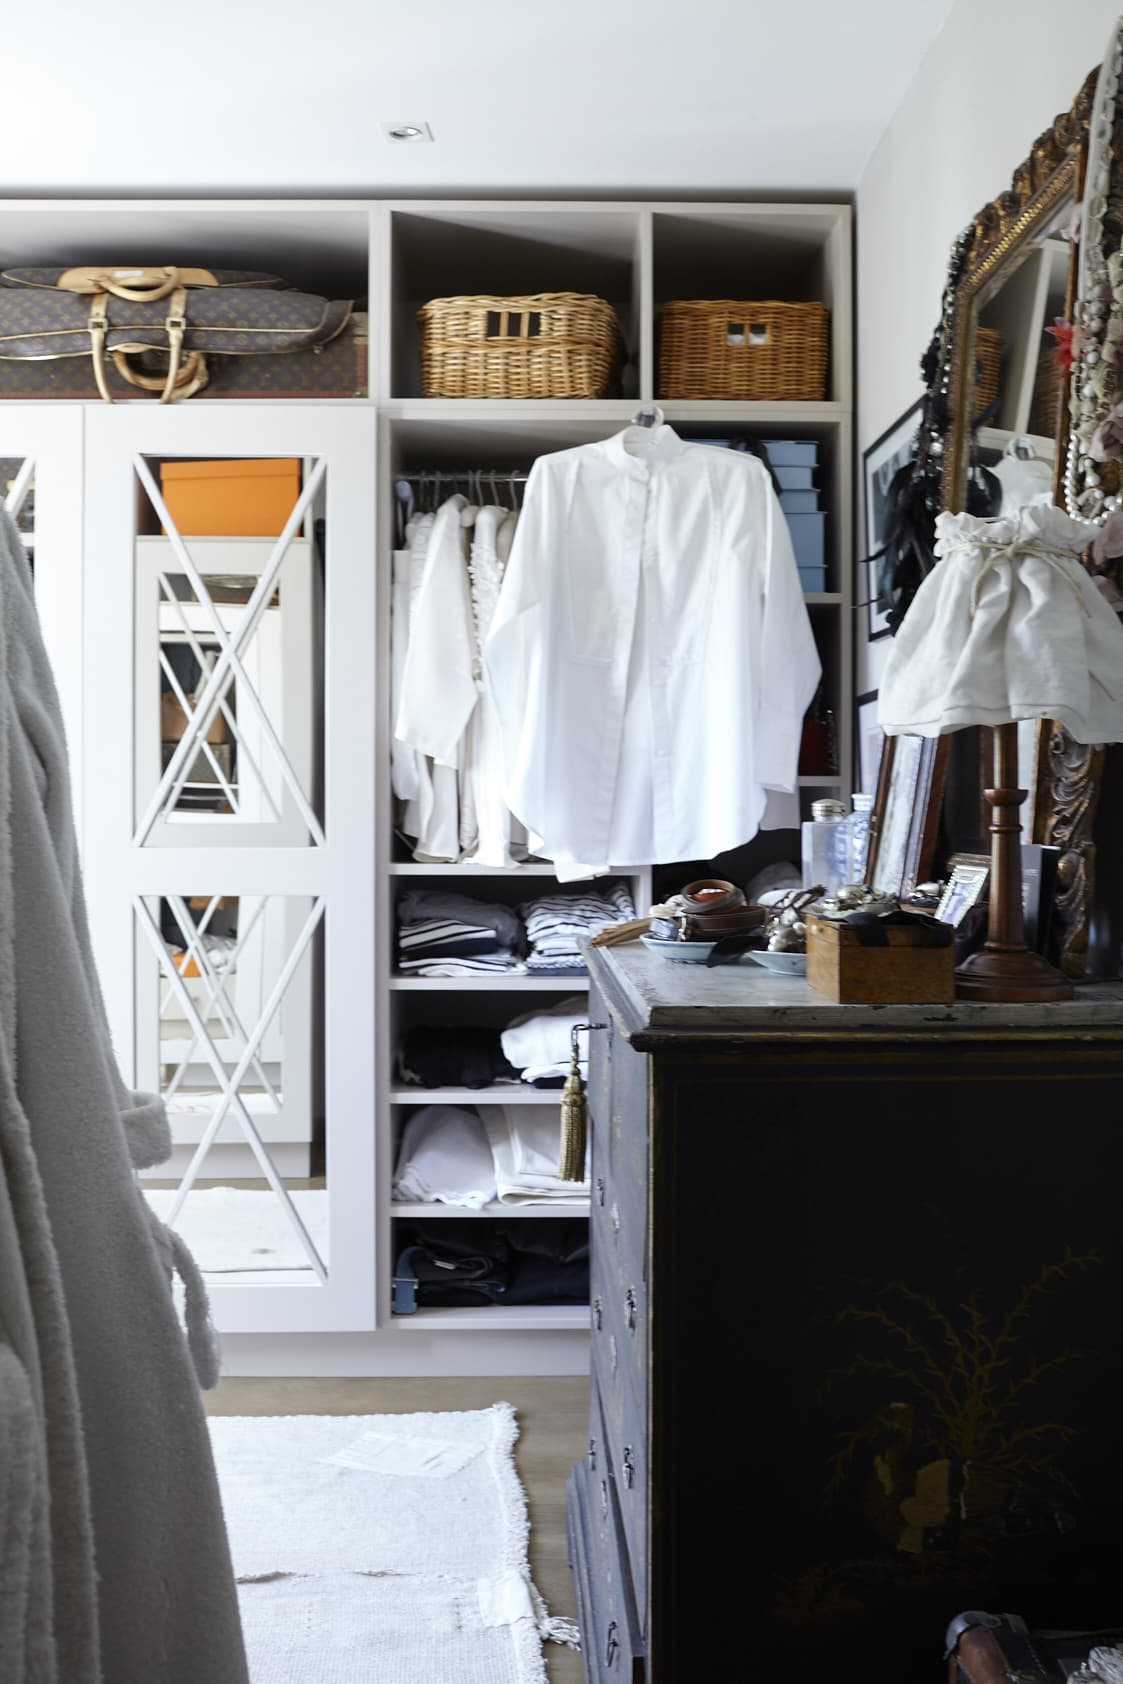 Anna's dressing room has built-in shelves and cabinets that she designed herself. The worn-down Chinese dresser was bought at an auction.